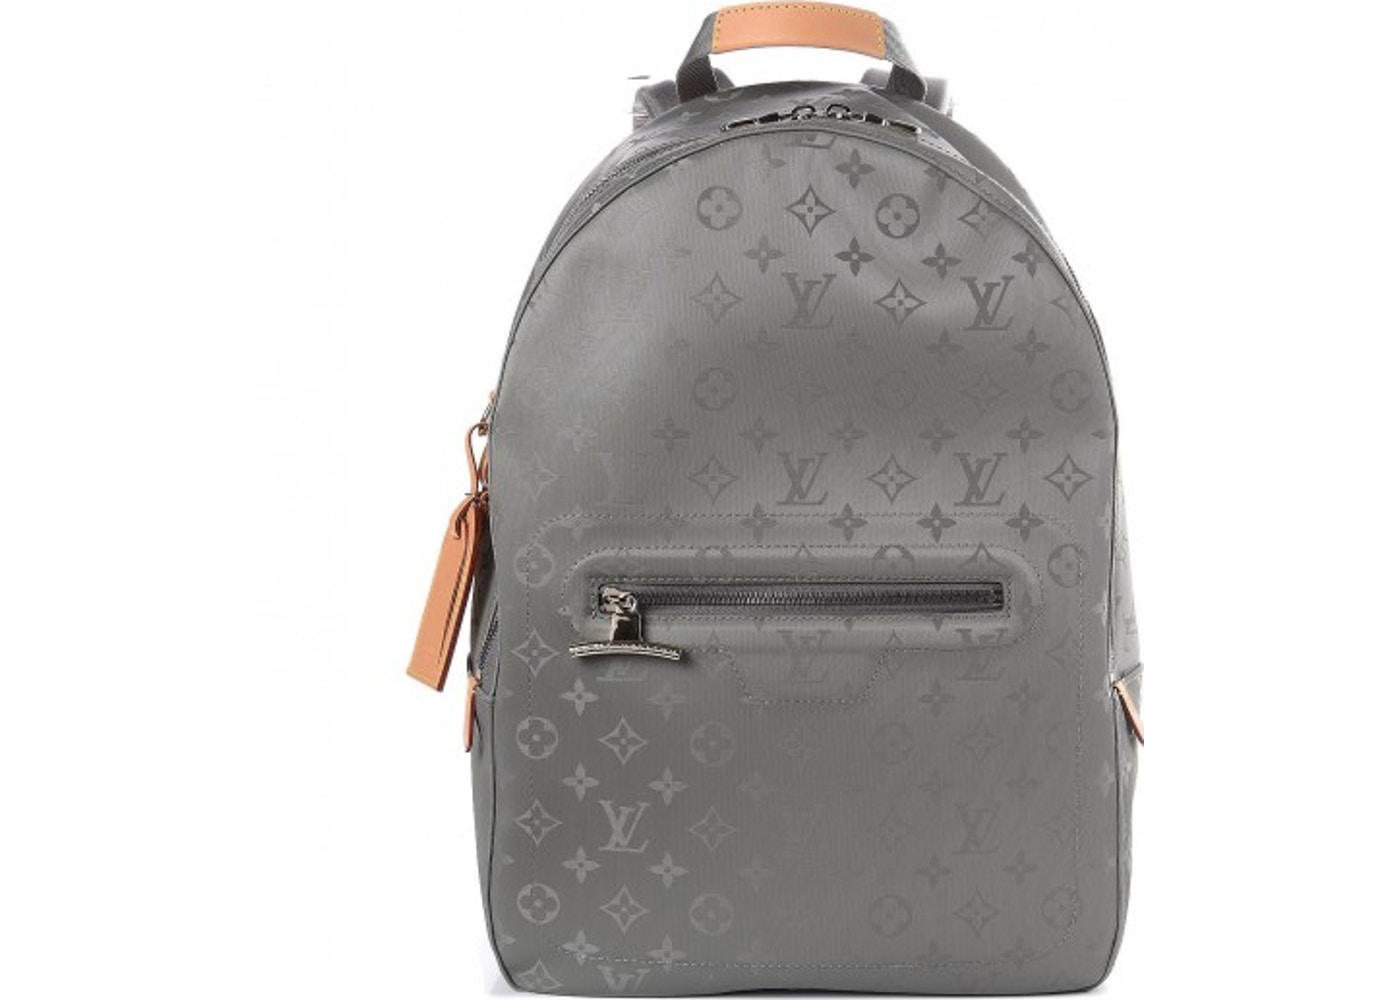 bac1d68cdd53 Louis Vuitton Backpack Titanium Monogram PM Grey. Monogram PM Grey